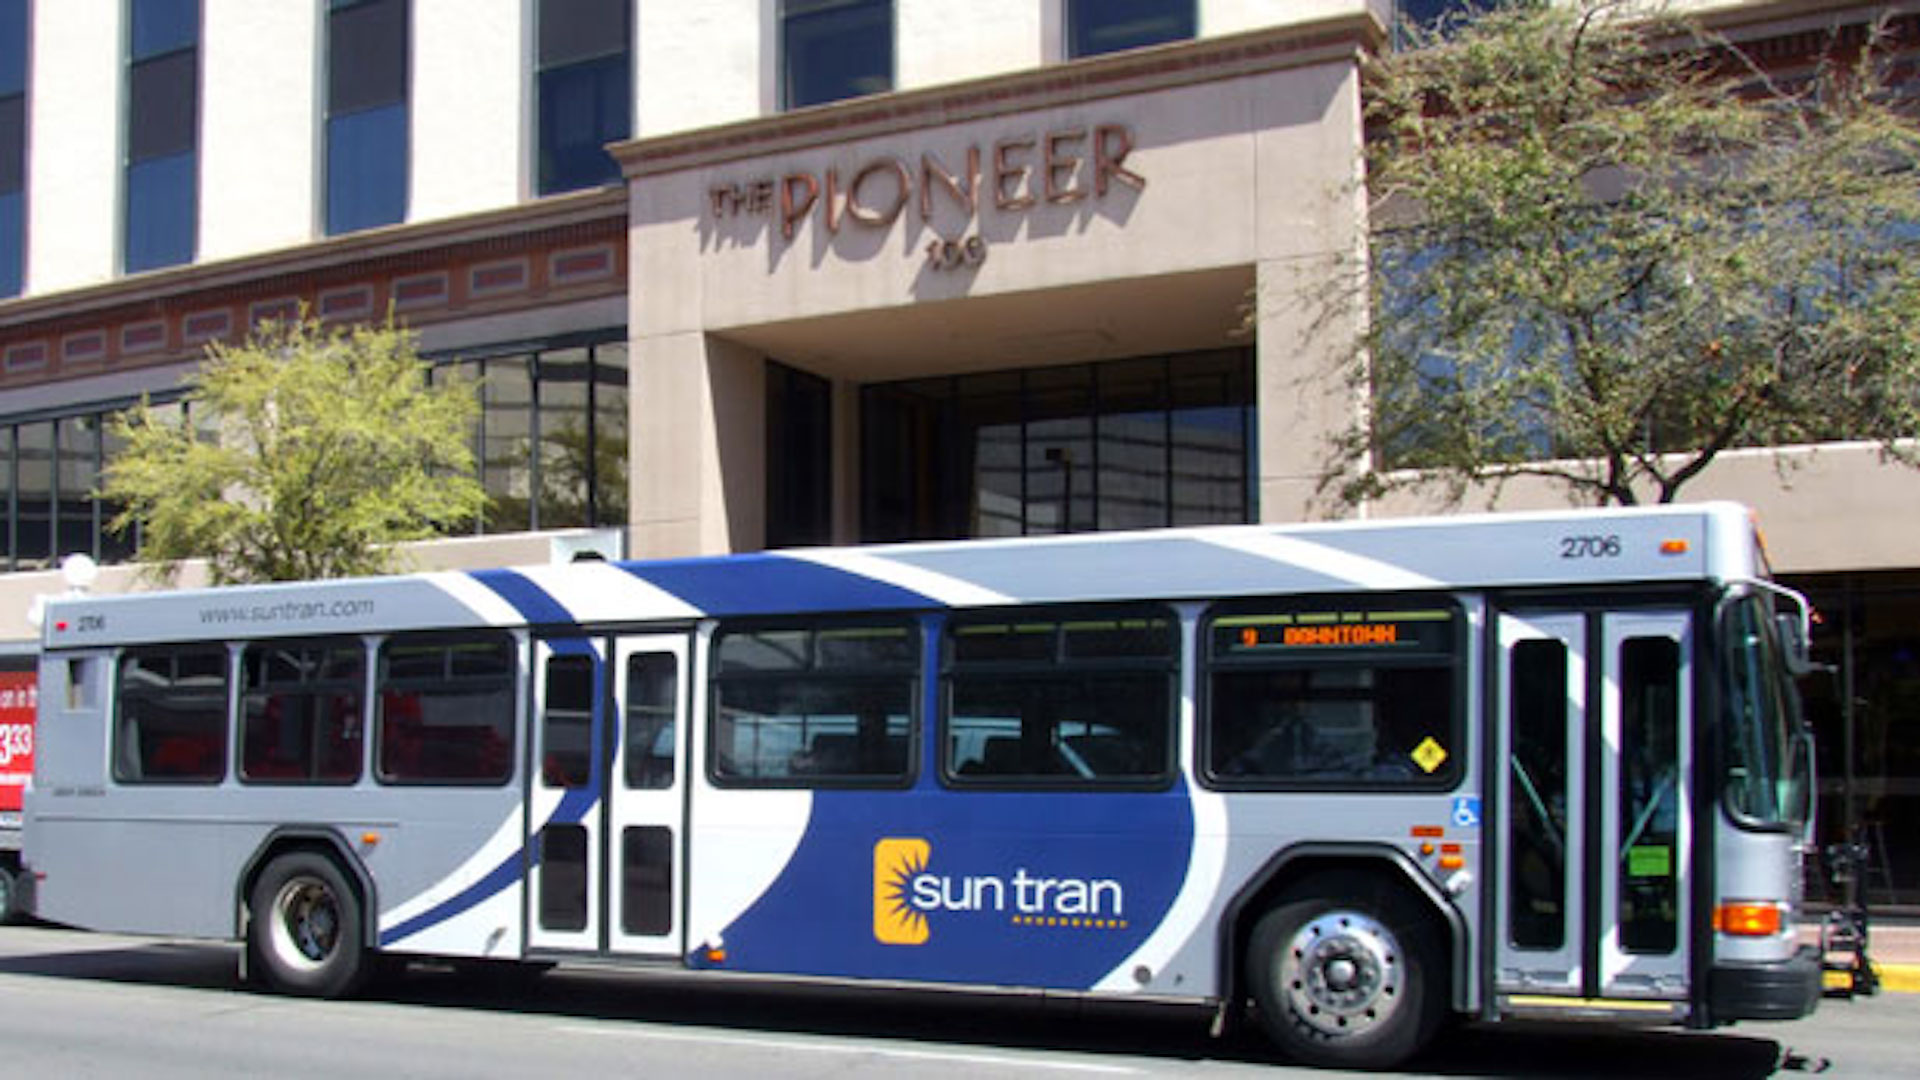 Sun Tran bus in downtown Tucson.